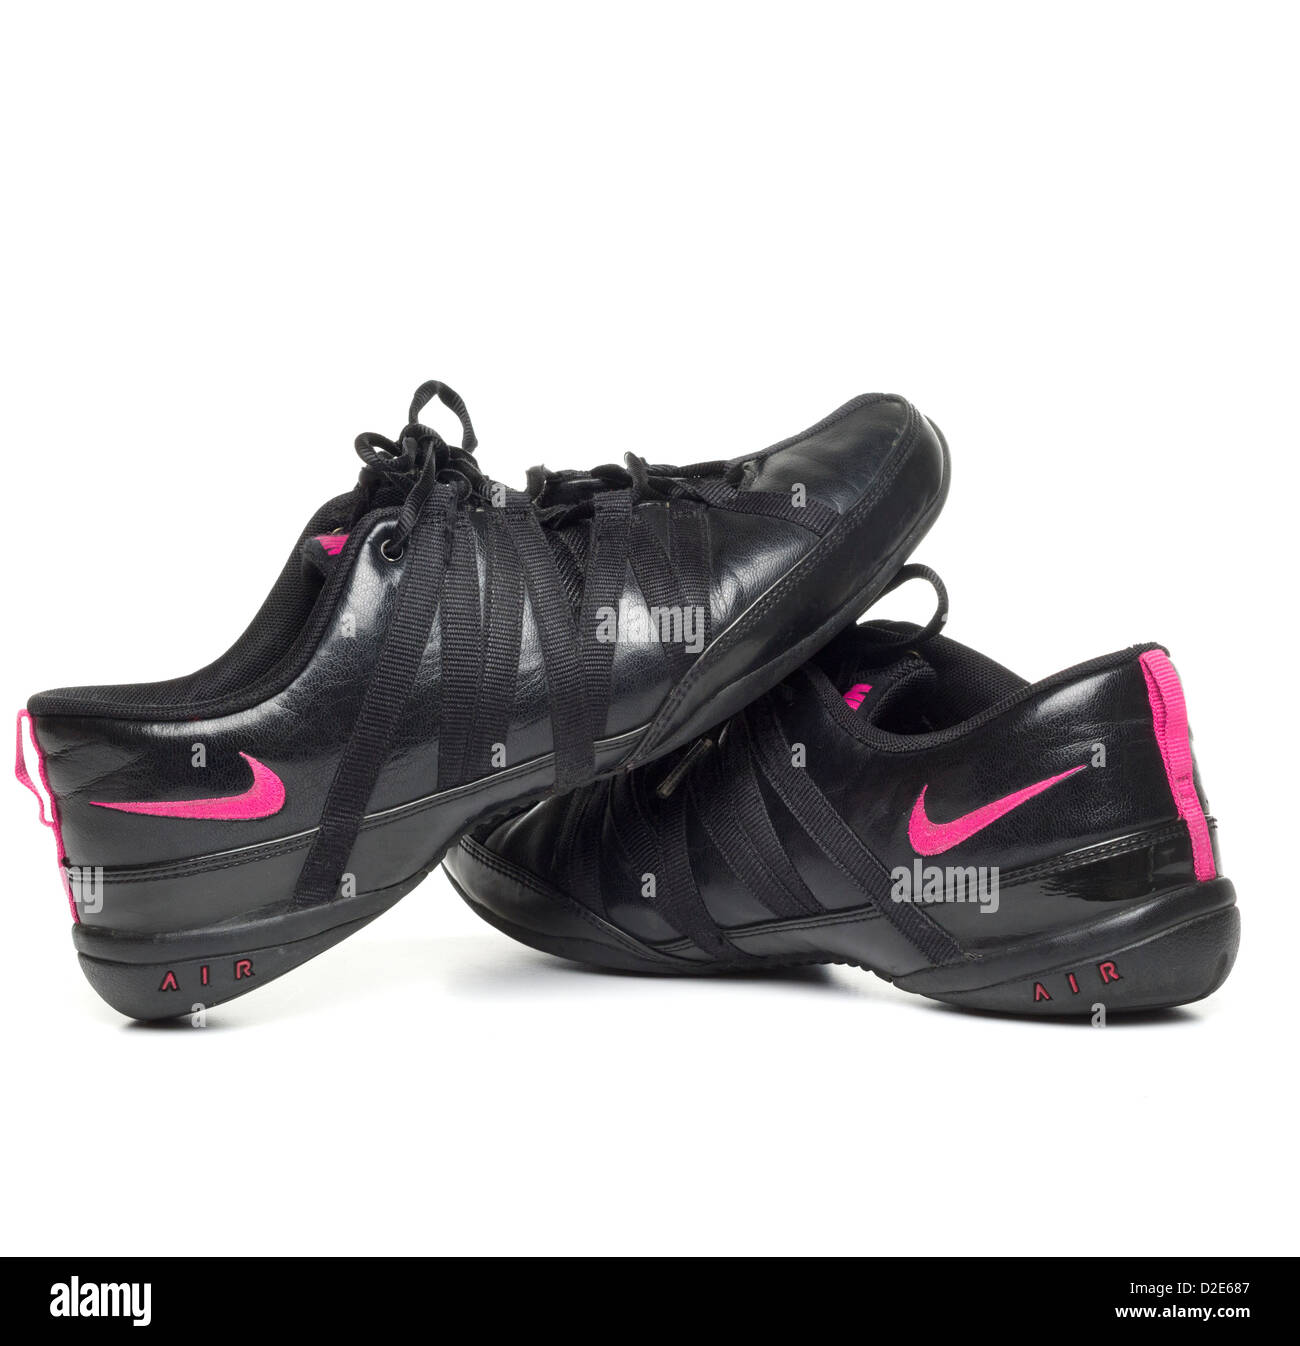 uk availability b67be 06843 One pair of womens black leather Nike fitness shoes